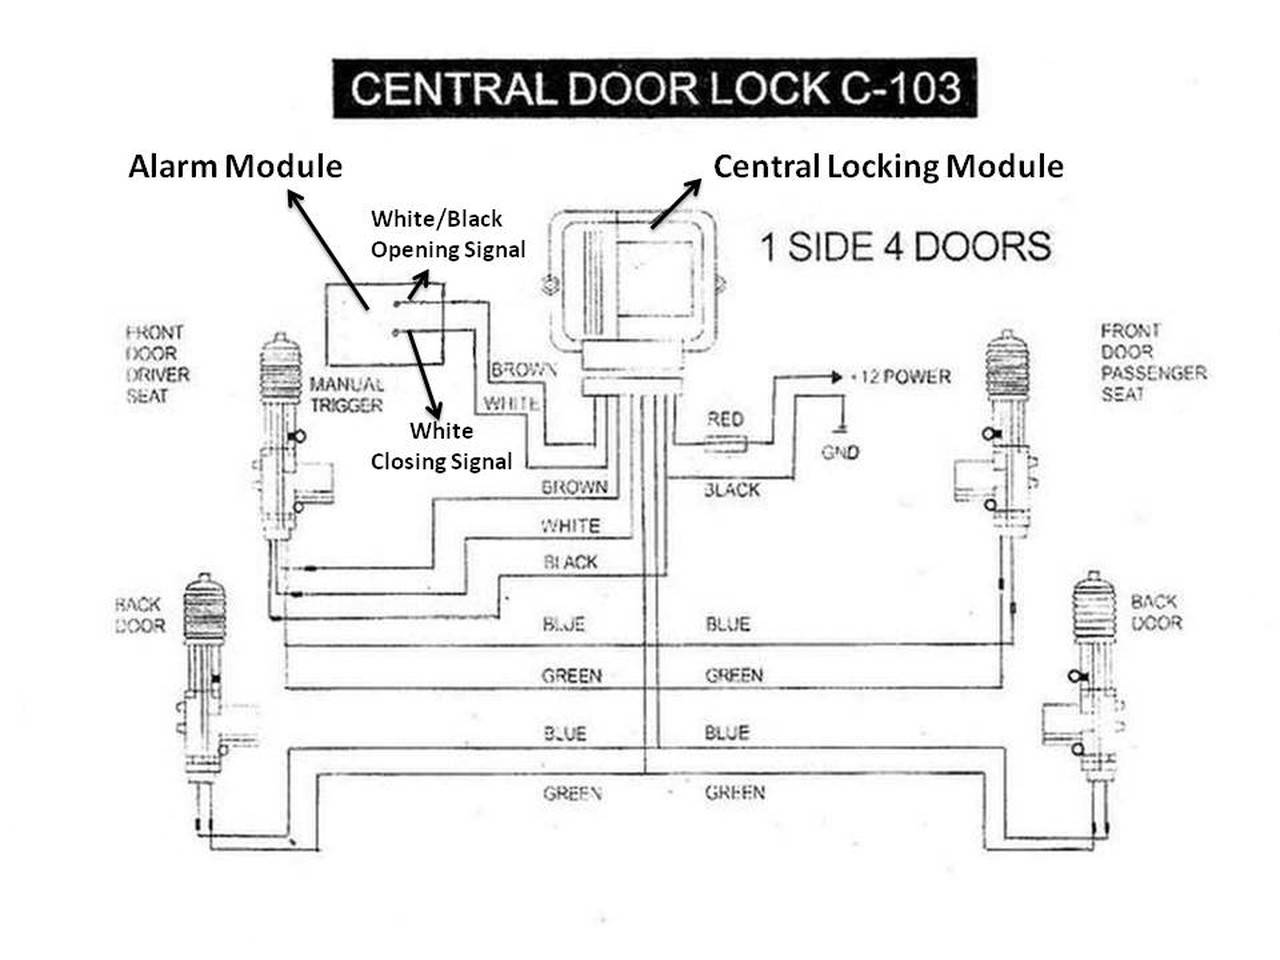 Remote Central Locking Wiring Diagram : 37 Wiring Diagram